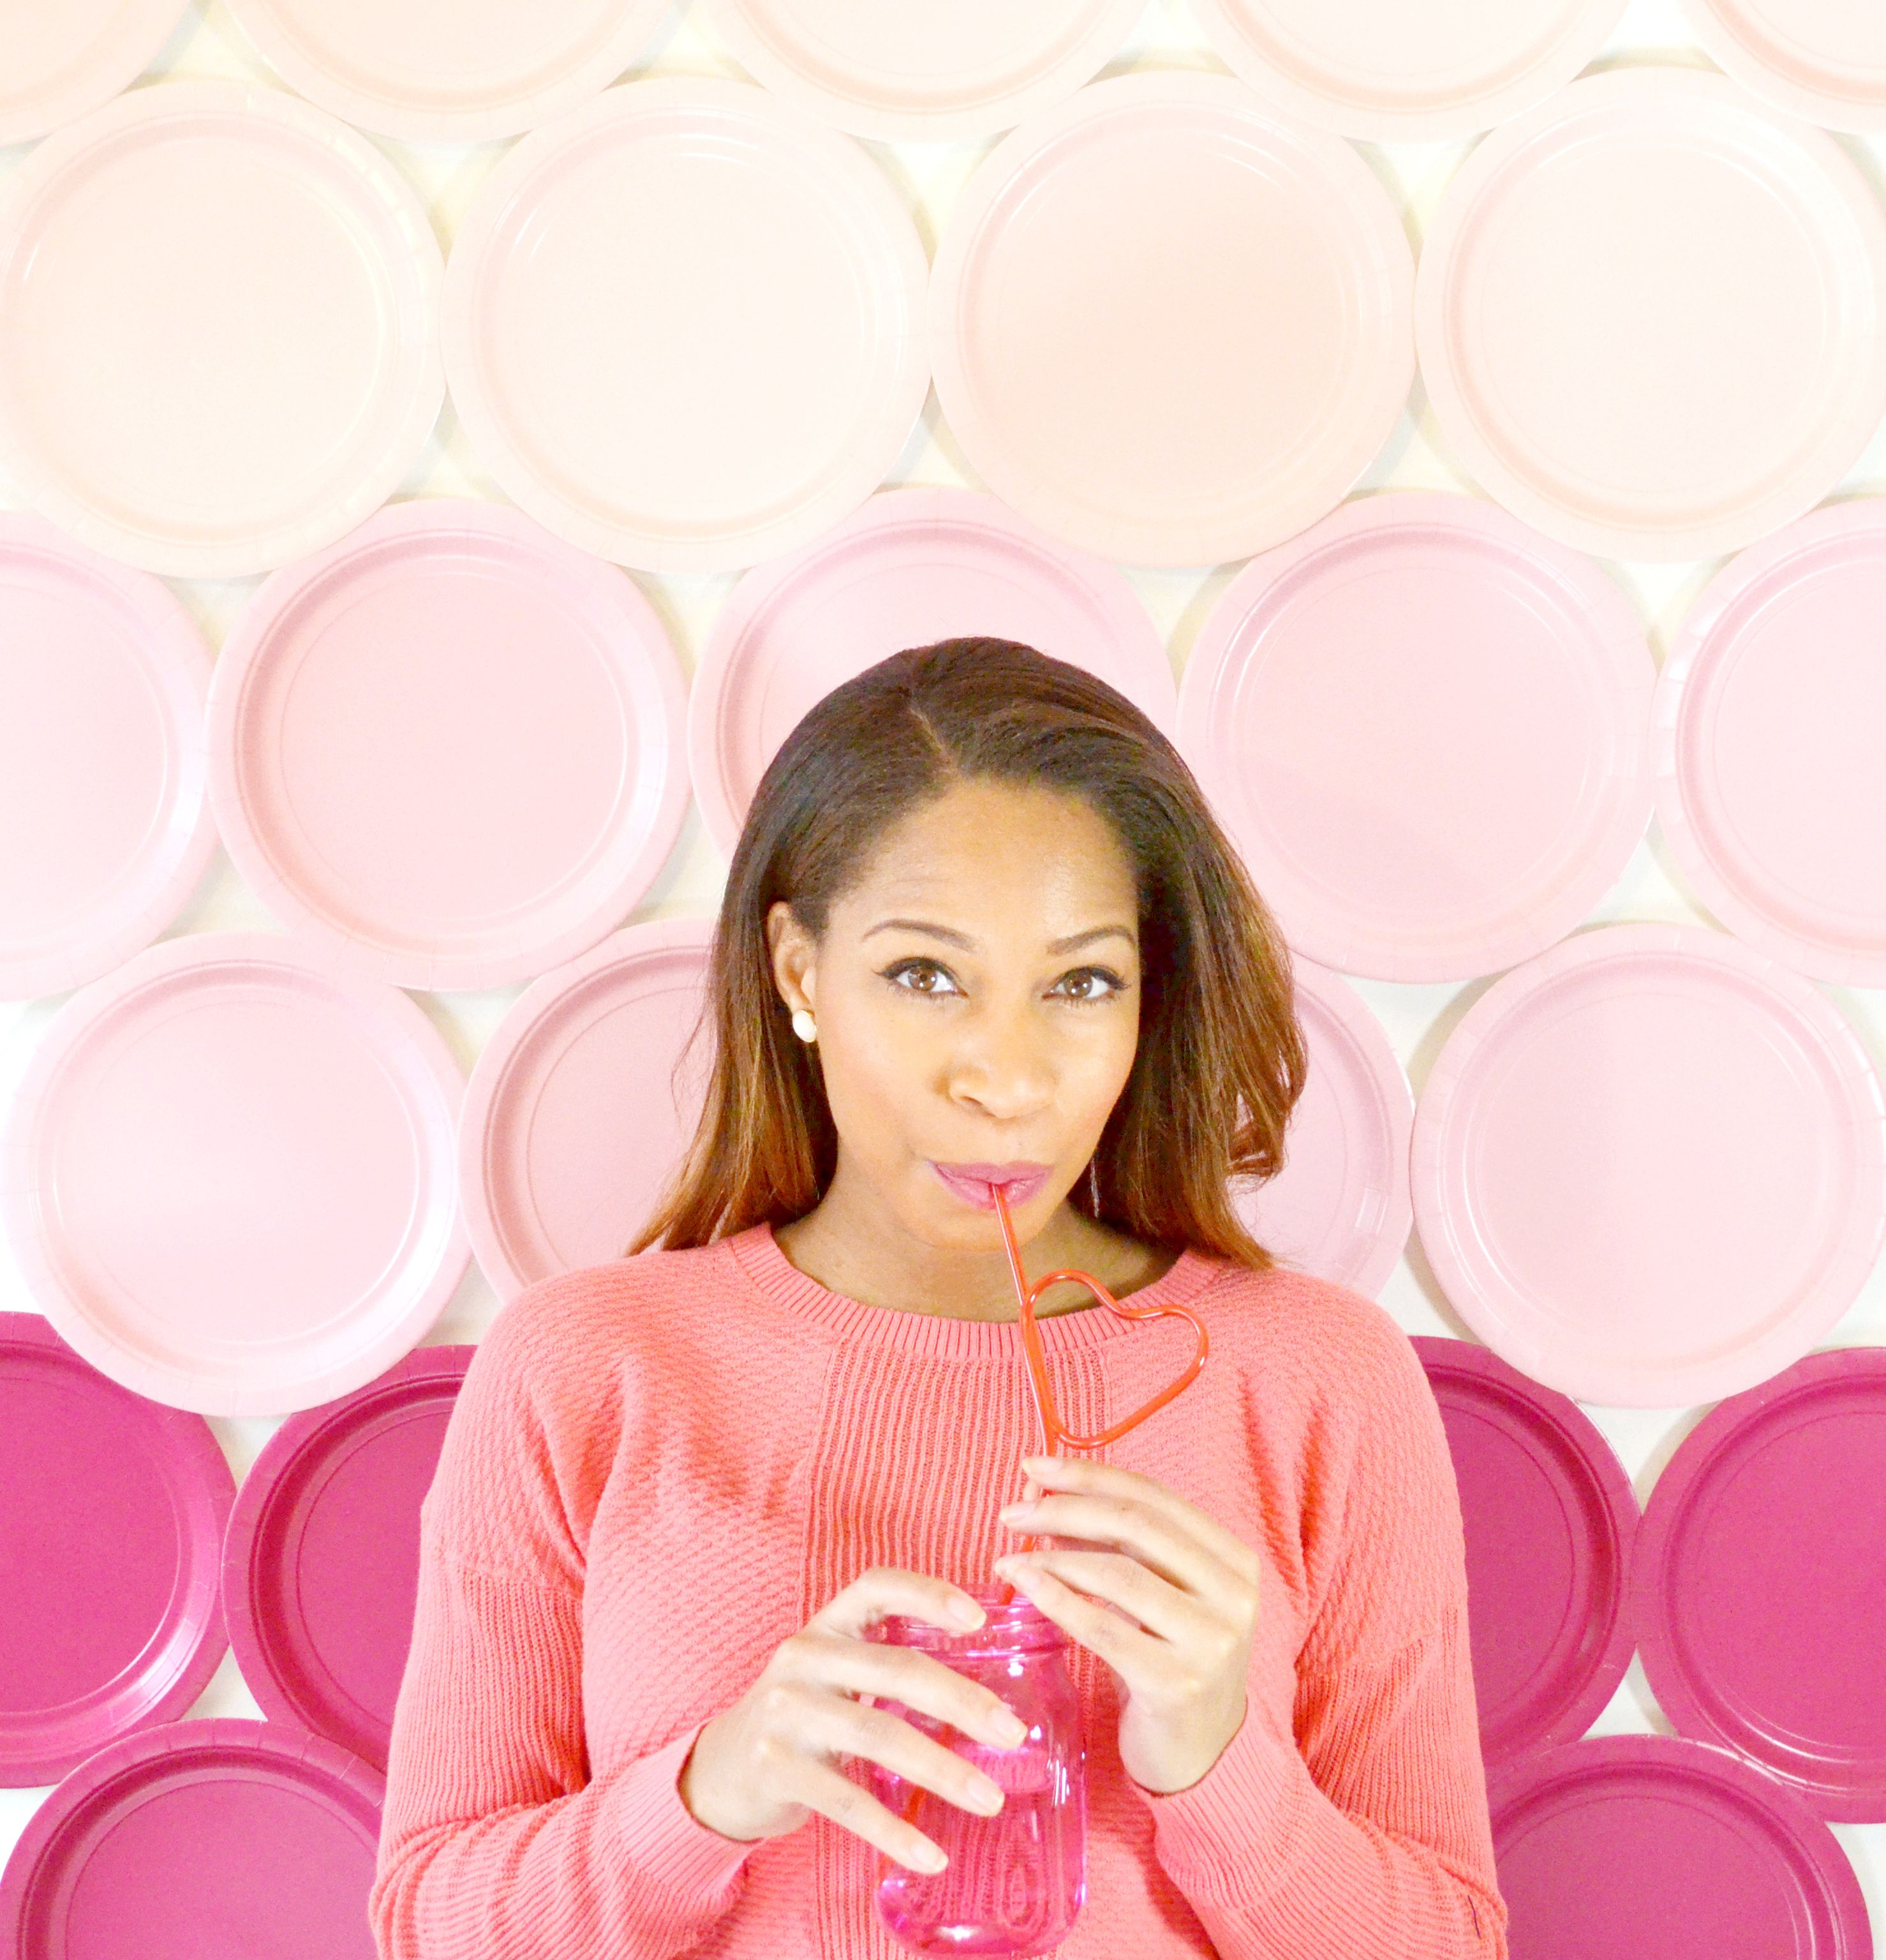 Ombre paper plate backdrop DIY from Spark & Chemistry blog - Valentine's Day, party decorations